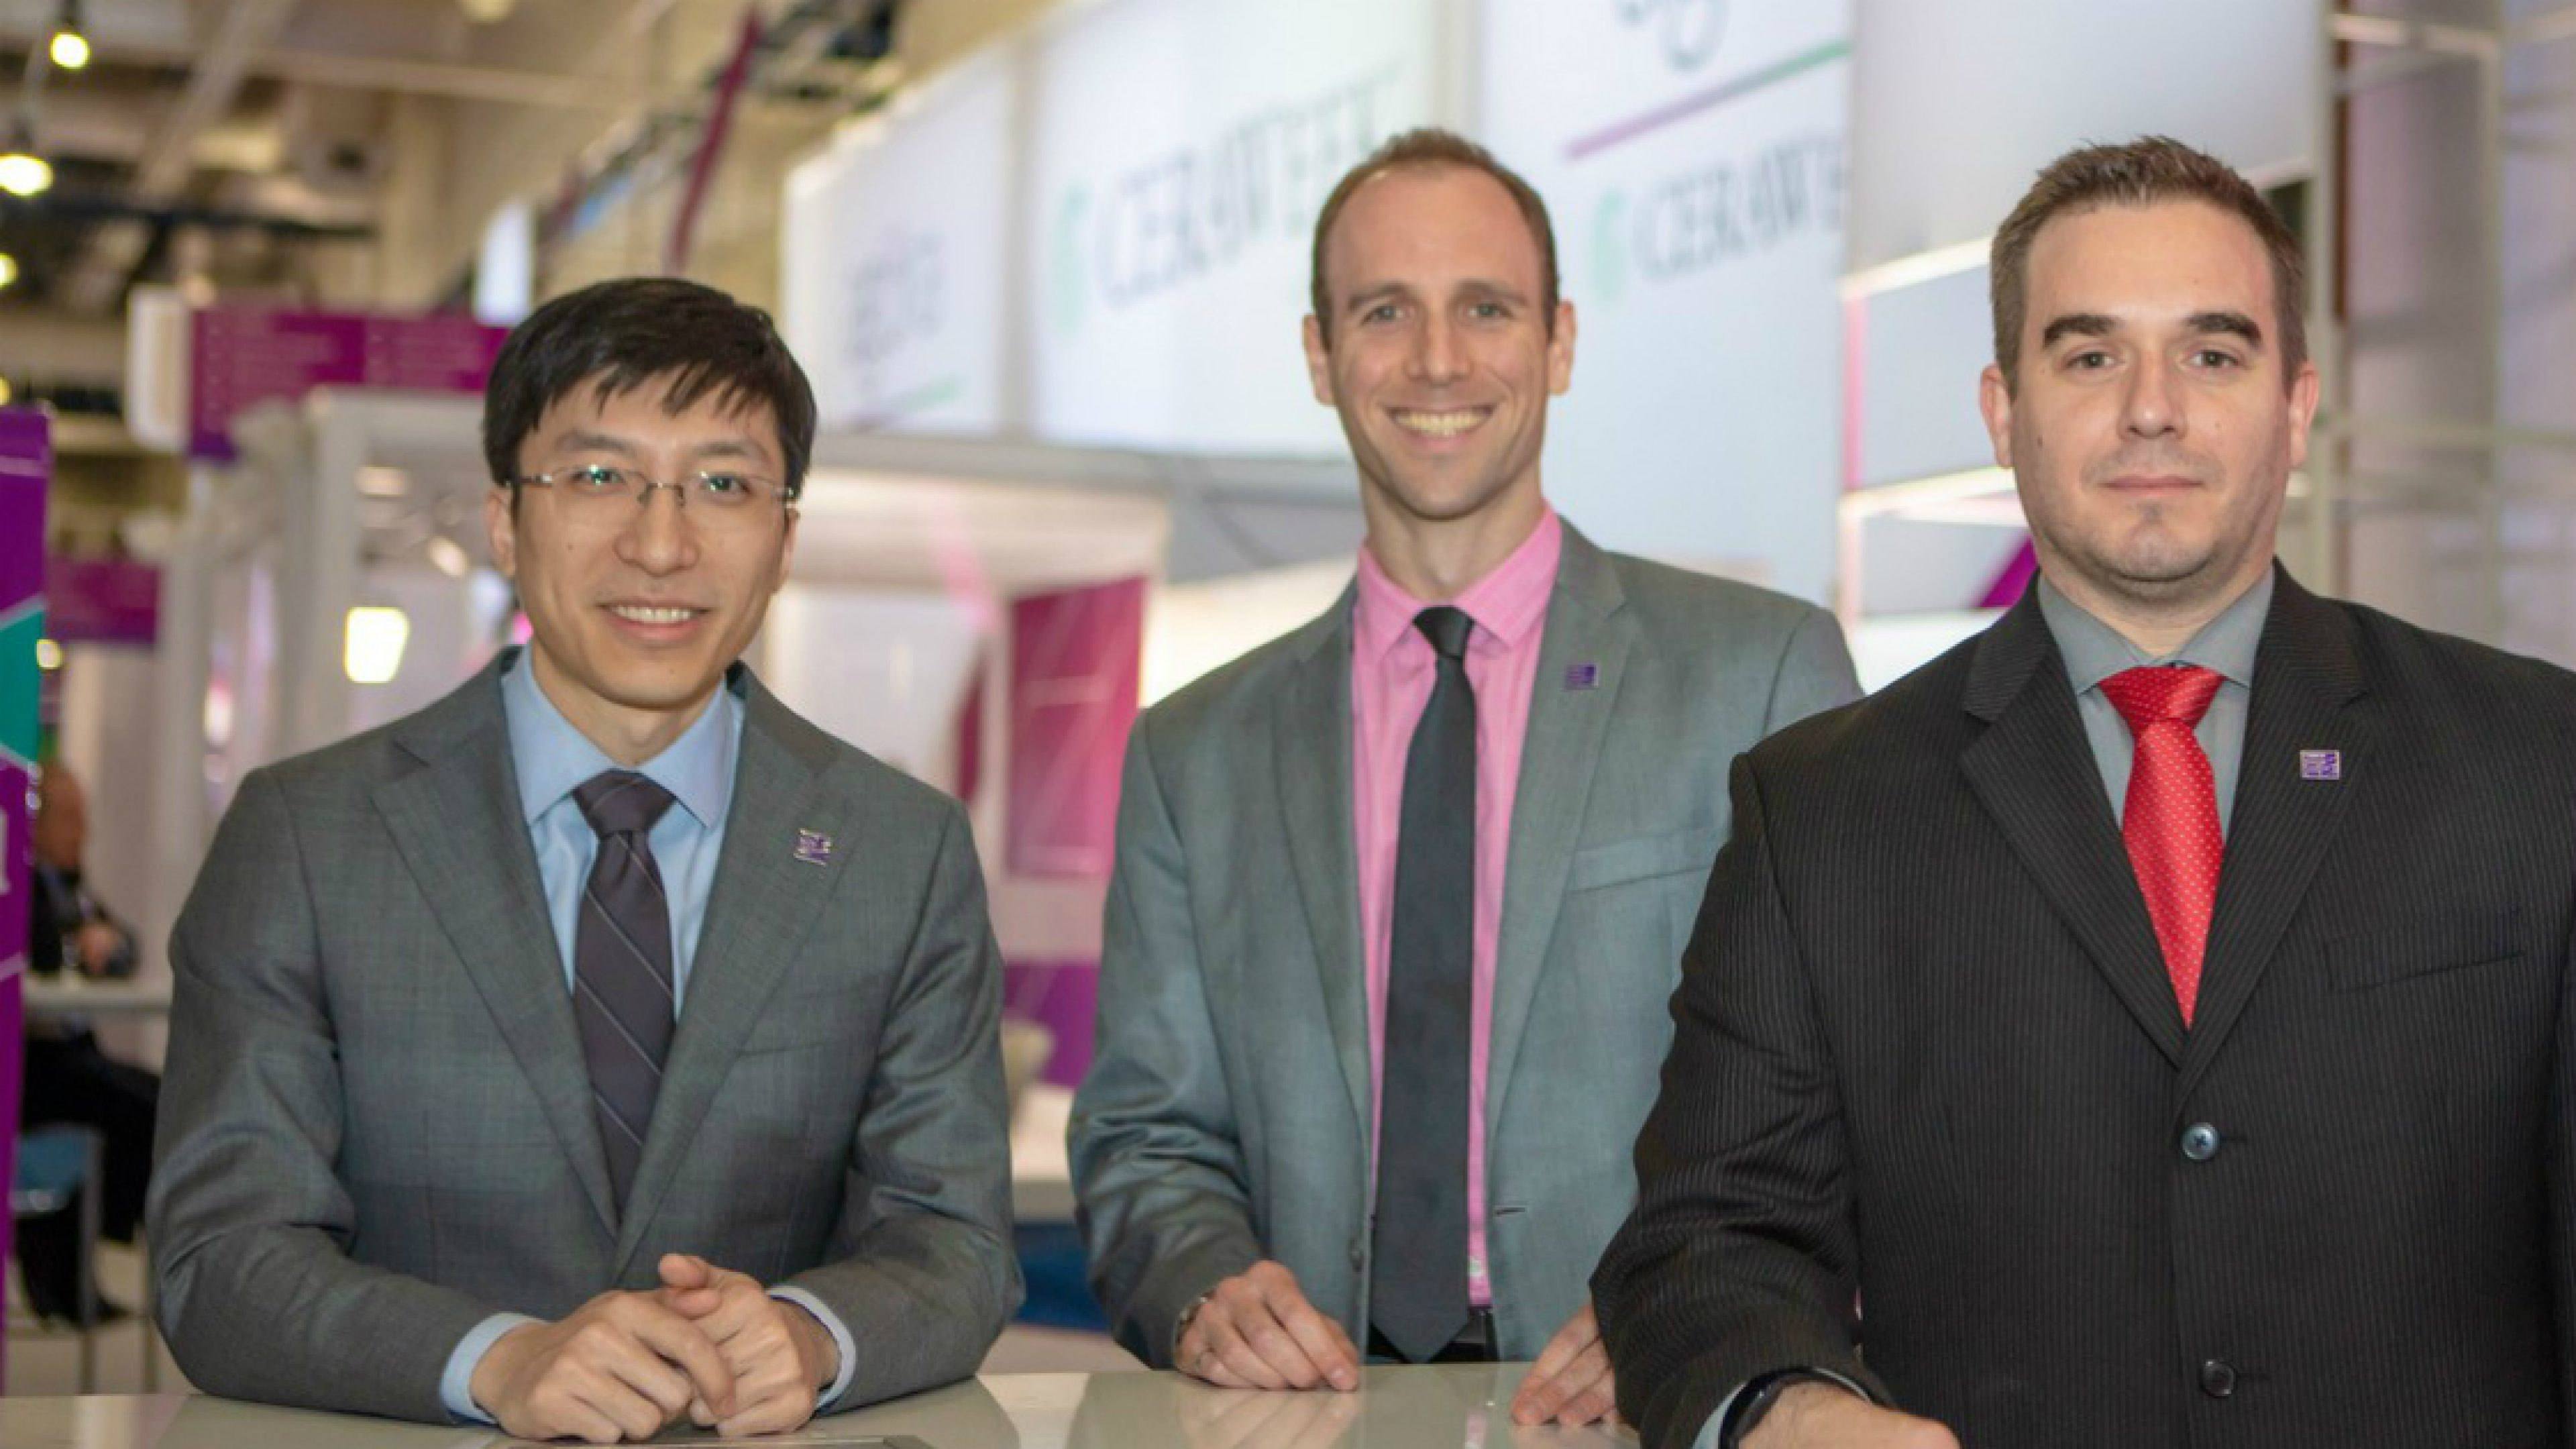 The Future Energy Leaders at CERAWeek 2019